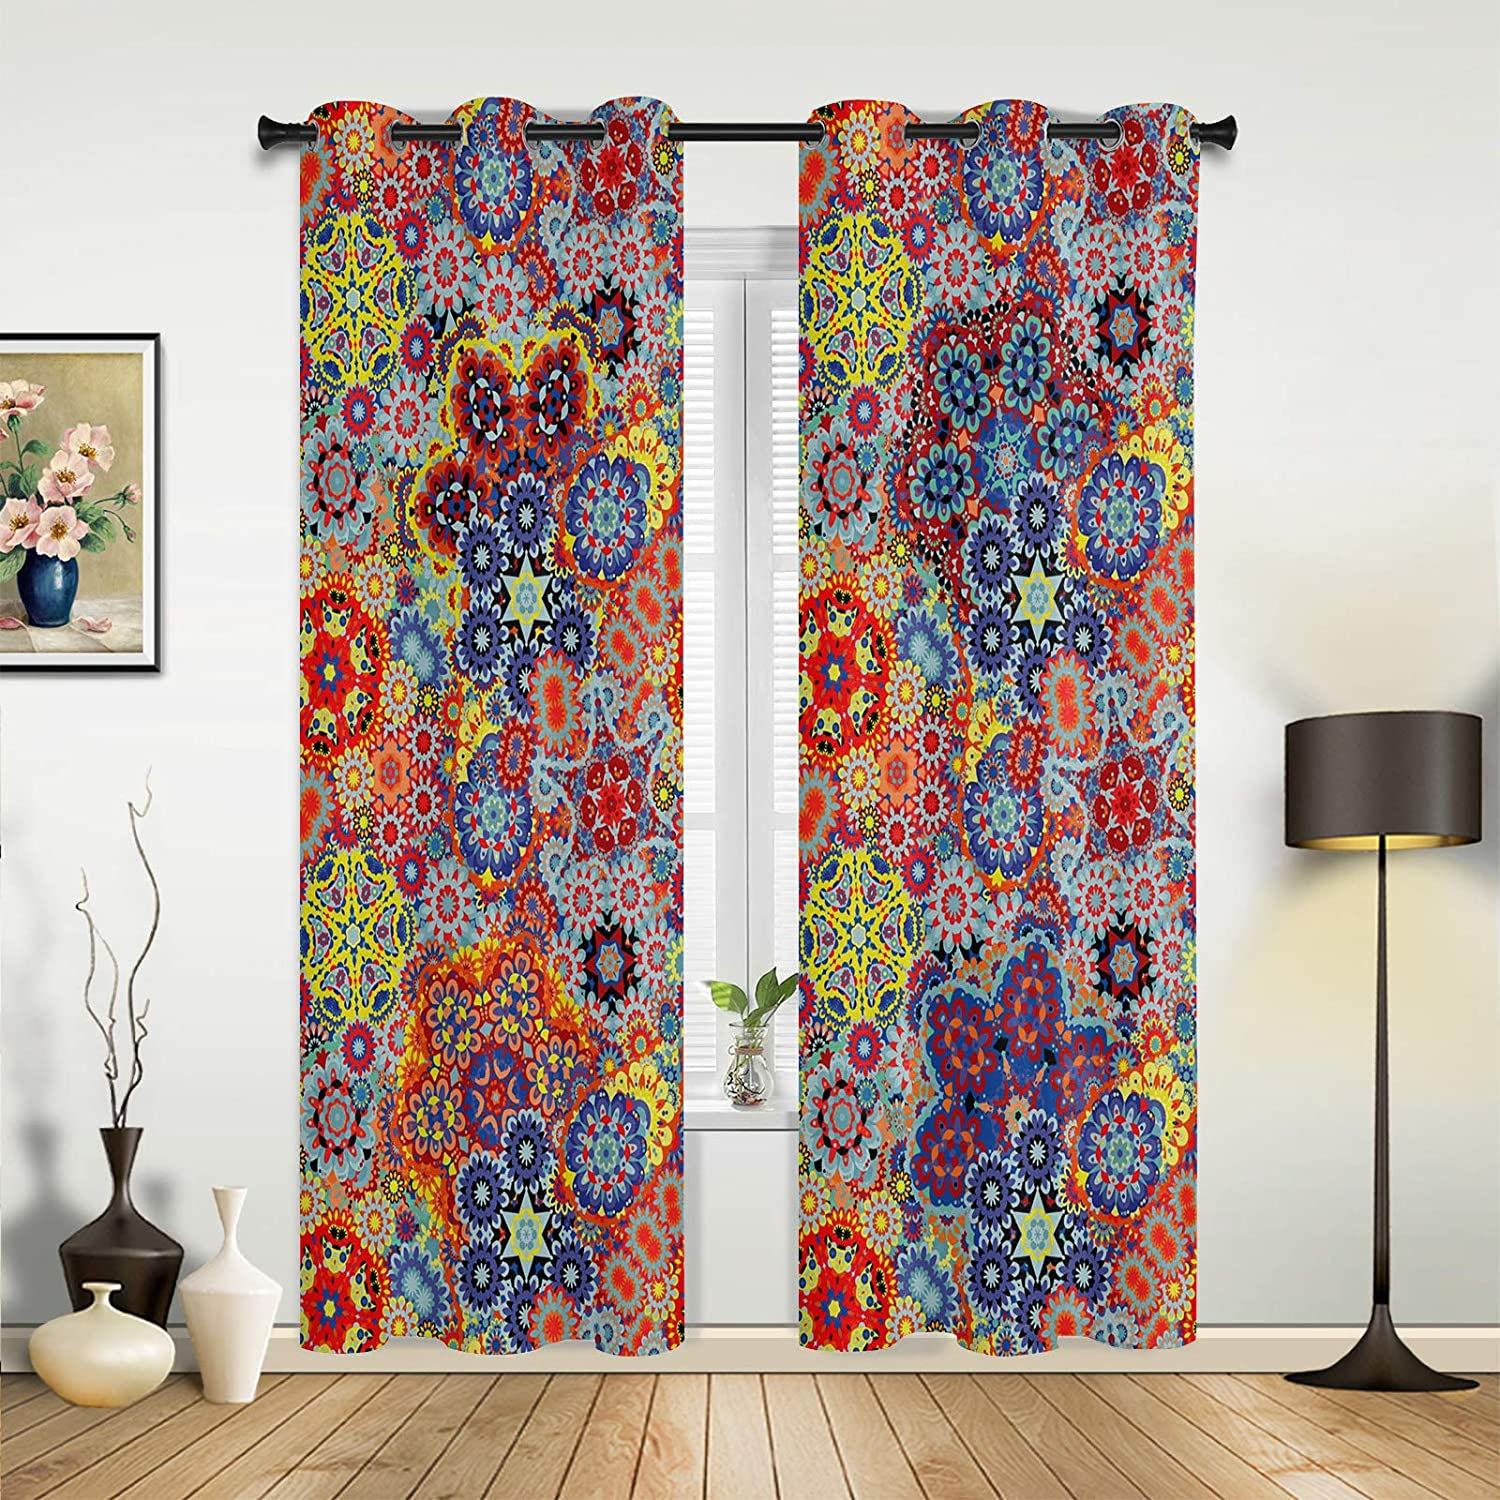 Semi Sheer Curtain Ranking TOP6 Kitchen Paisley Ranking TOP6 Window Red Flower Floral Blue